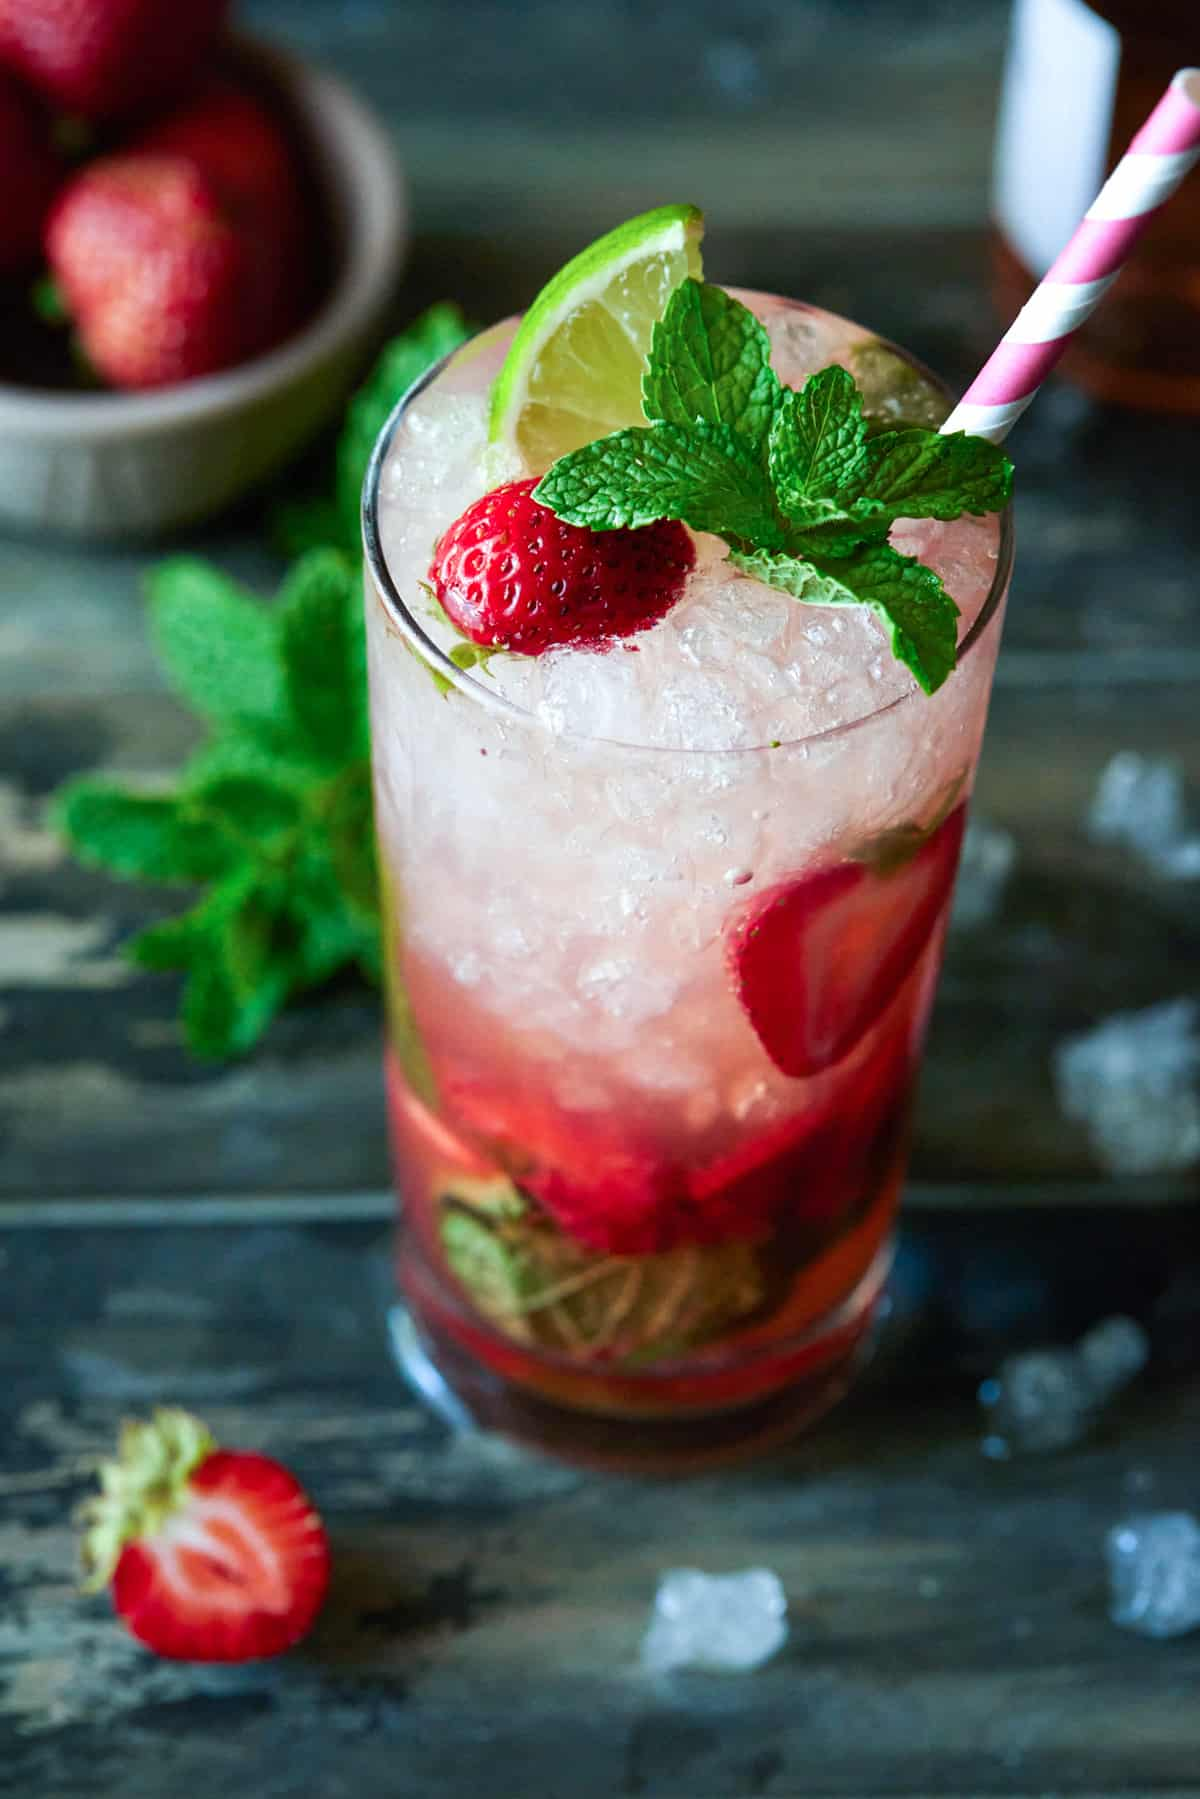 Strawberry mojito in a highball glass garnished with fresh lime, strawberry and mint leaves.